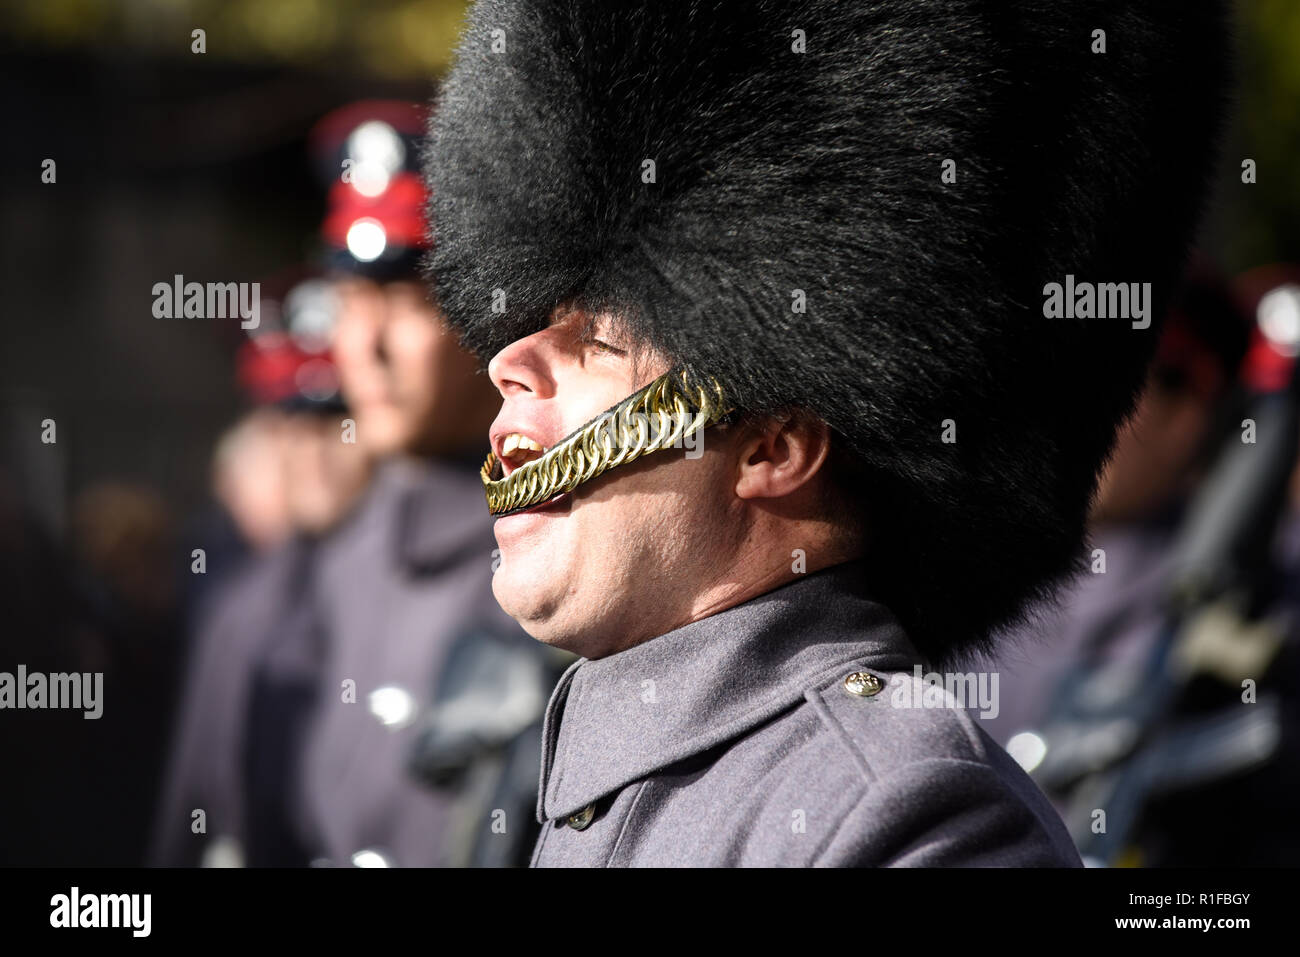 Officer of the Honourable Artillery Company of the British Army barking orders at the Lord Mayor's Show Parade, London, UK - Stock Image